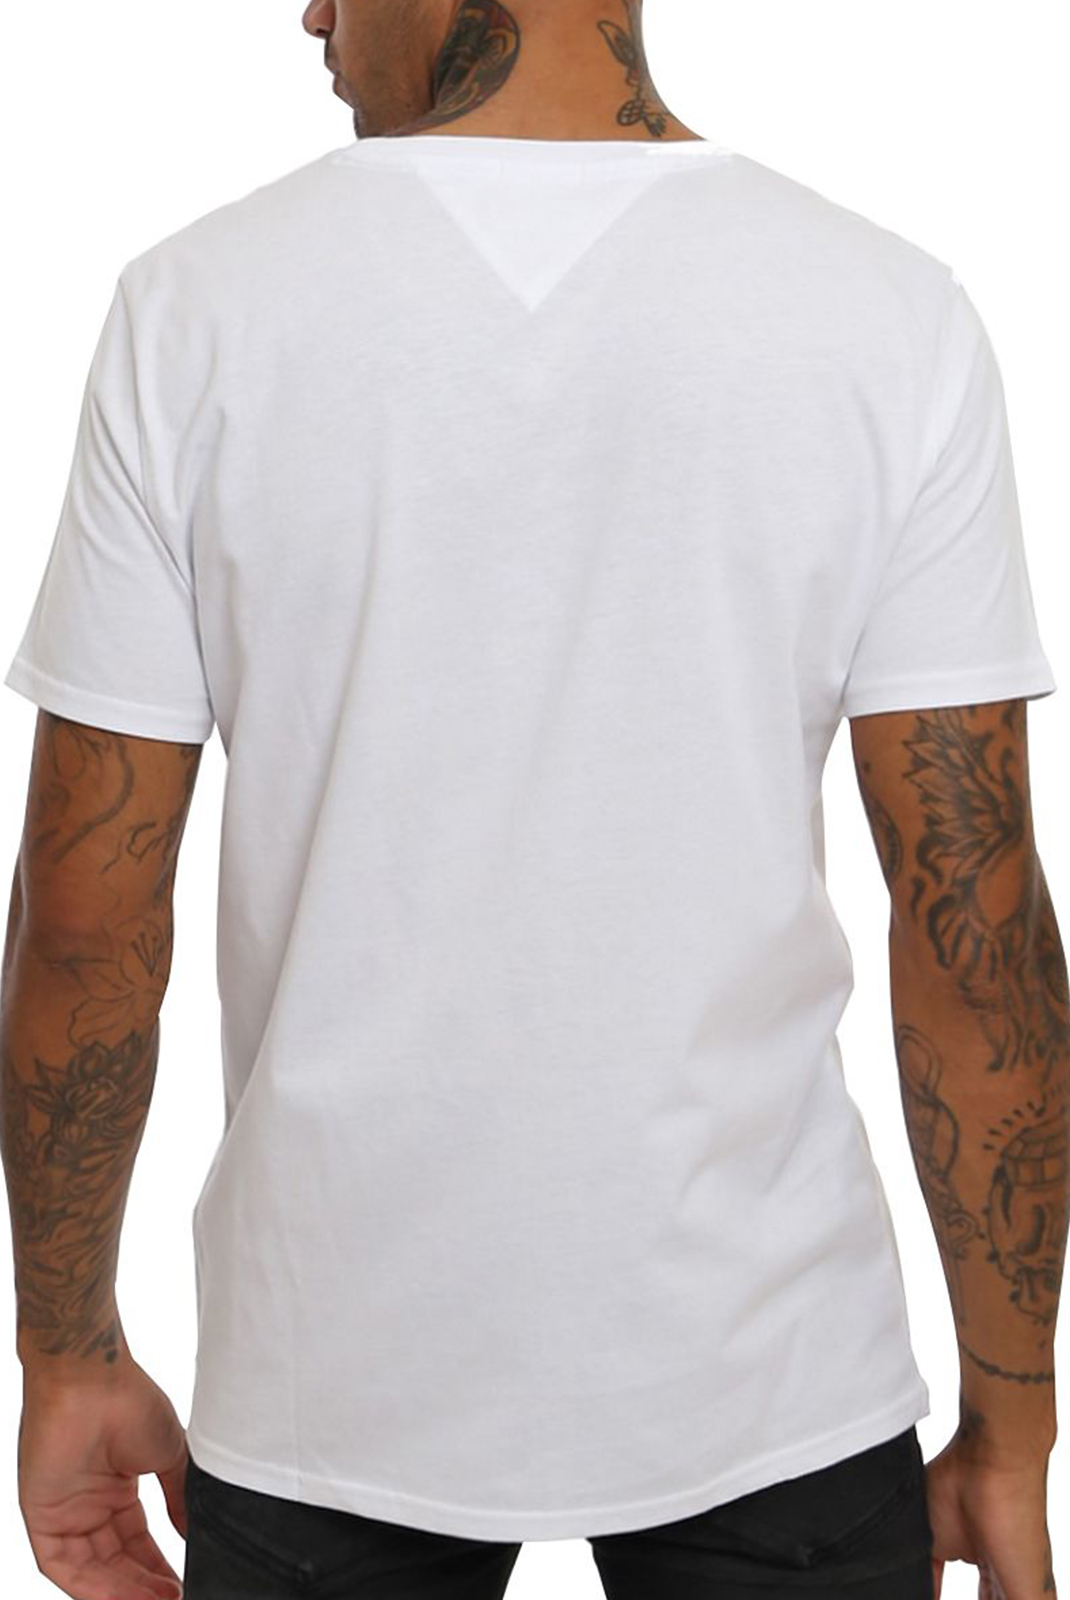 Tee-shirts  Tommy hilfiger DM0DM04411 JERSEY CLASSIC WHITE